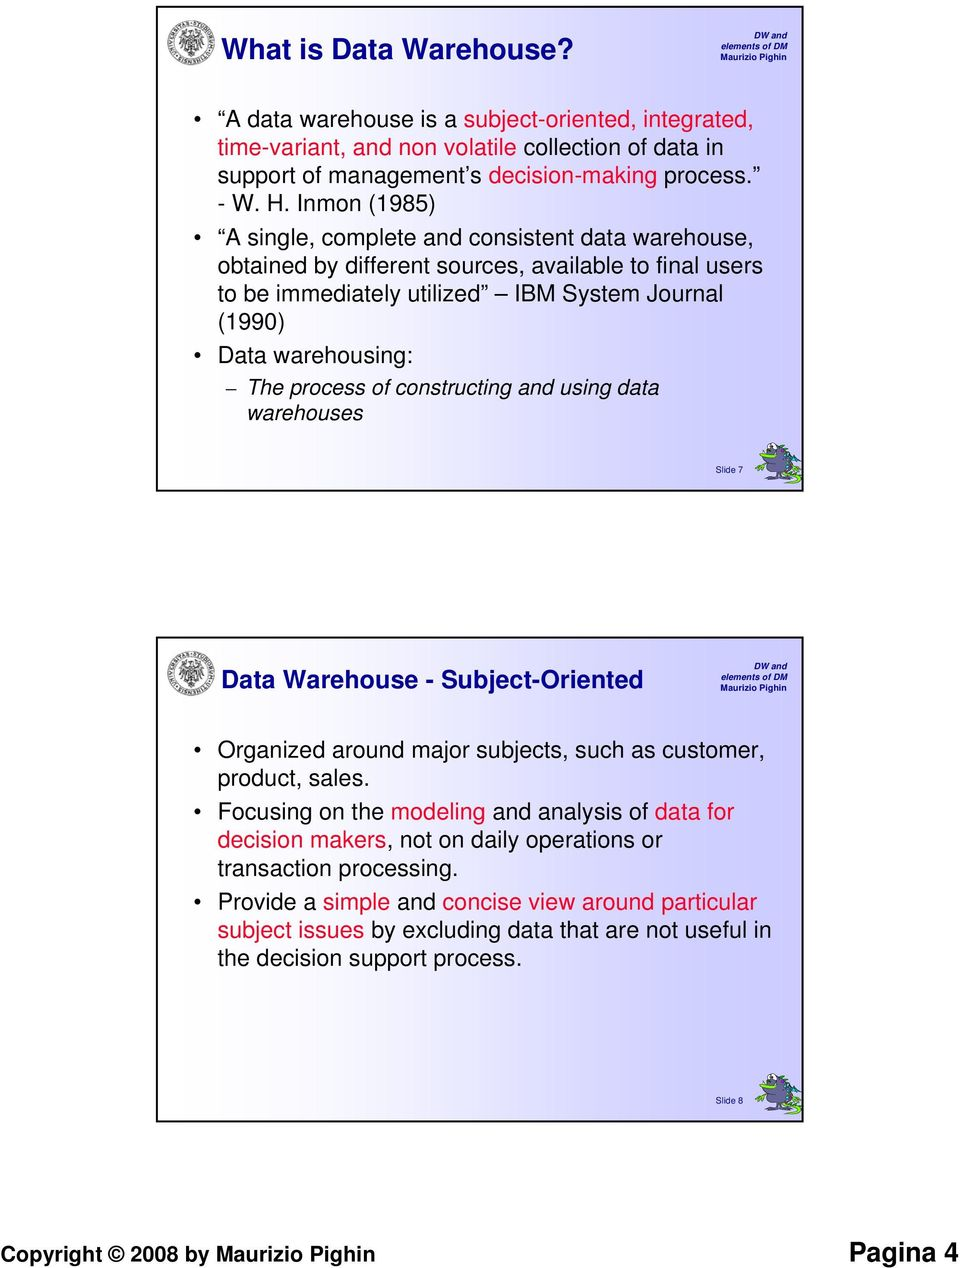 process of constructing and using data warehouses Slide 7 Data Warehouse - Subject-Oriented Organized around major subjects, such as customer, product, sales.